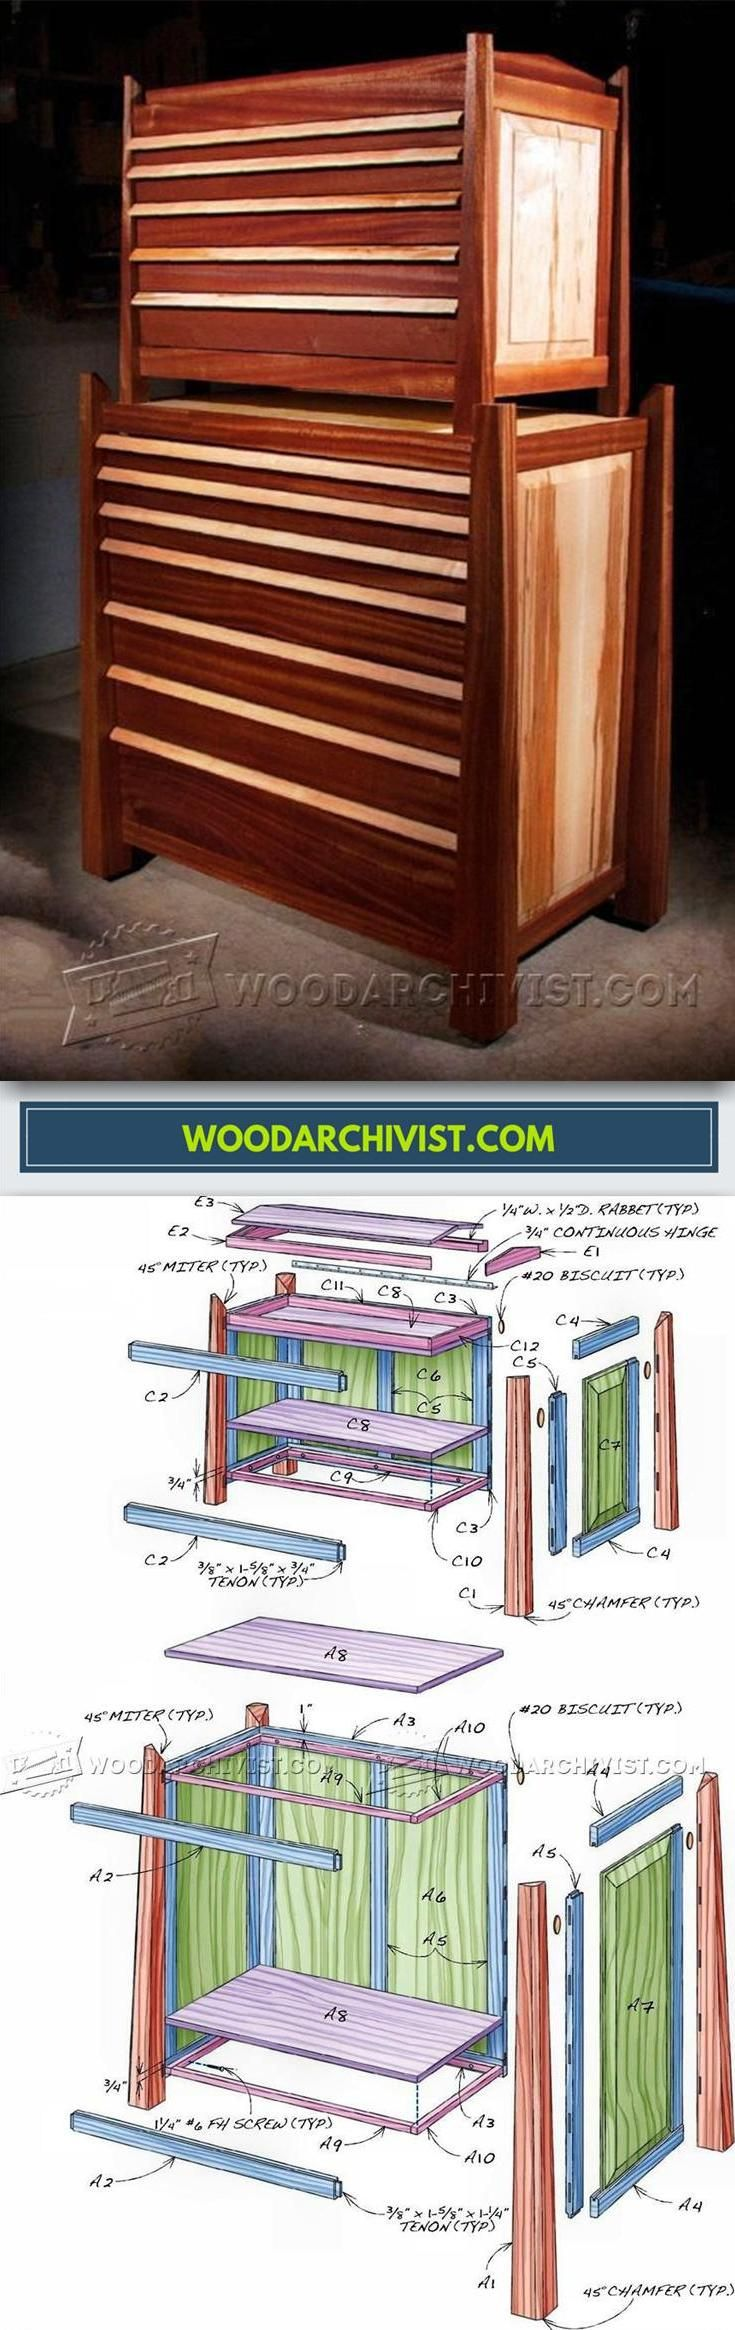 4345 best Woodworking images on Pinterest | Furniture ideas ...